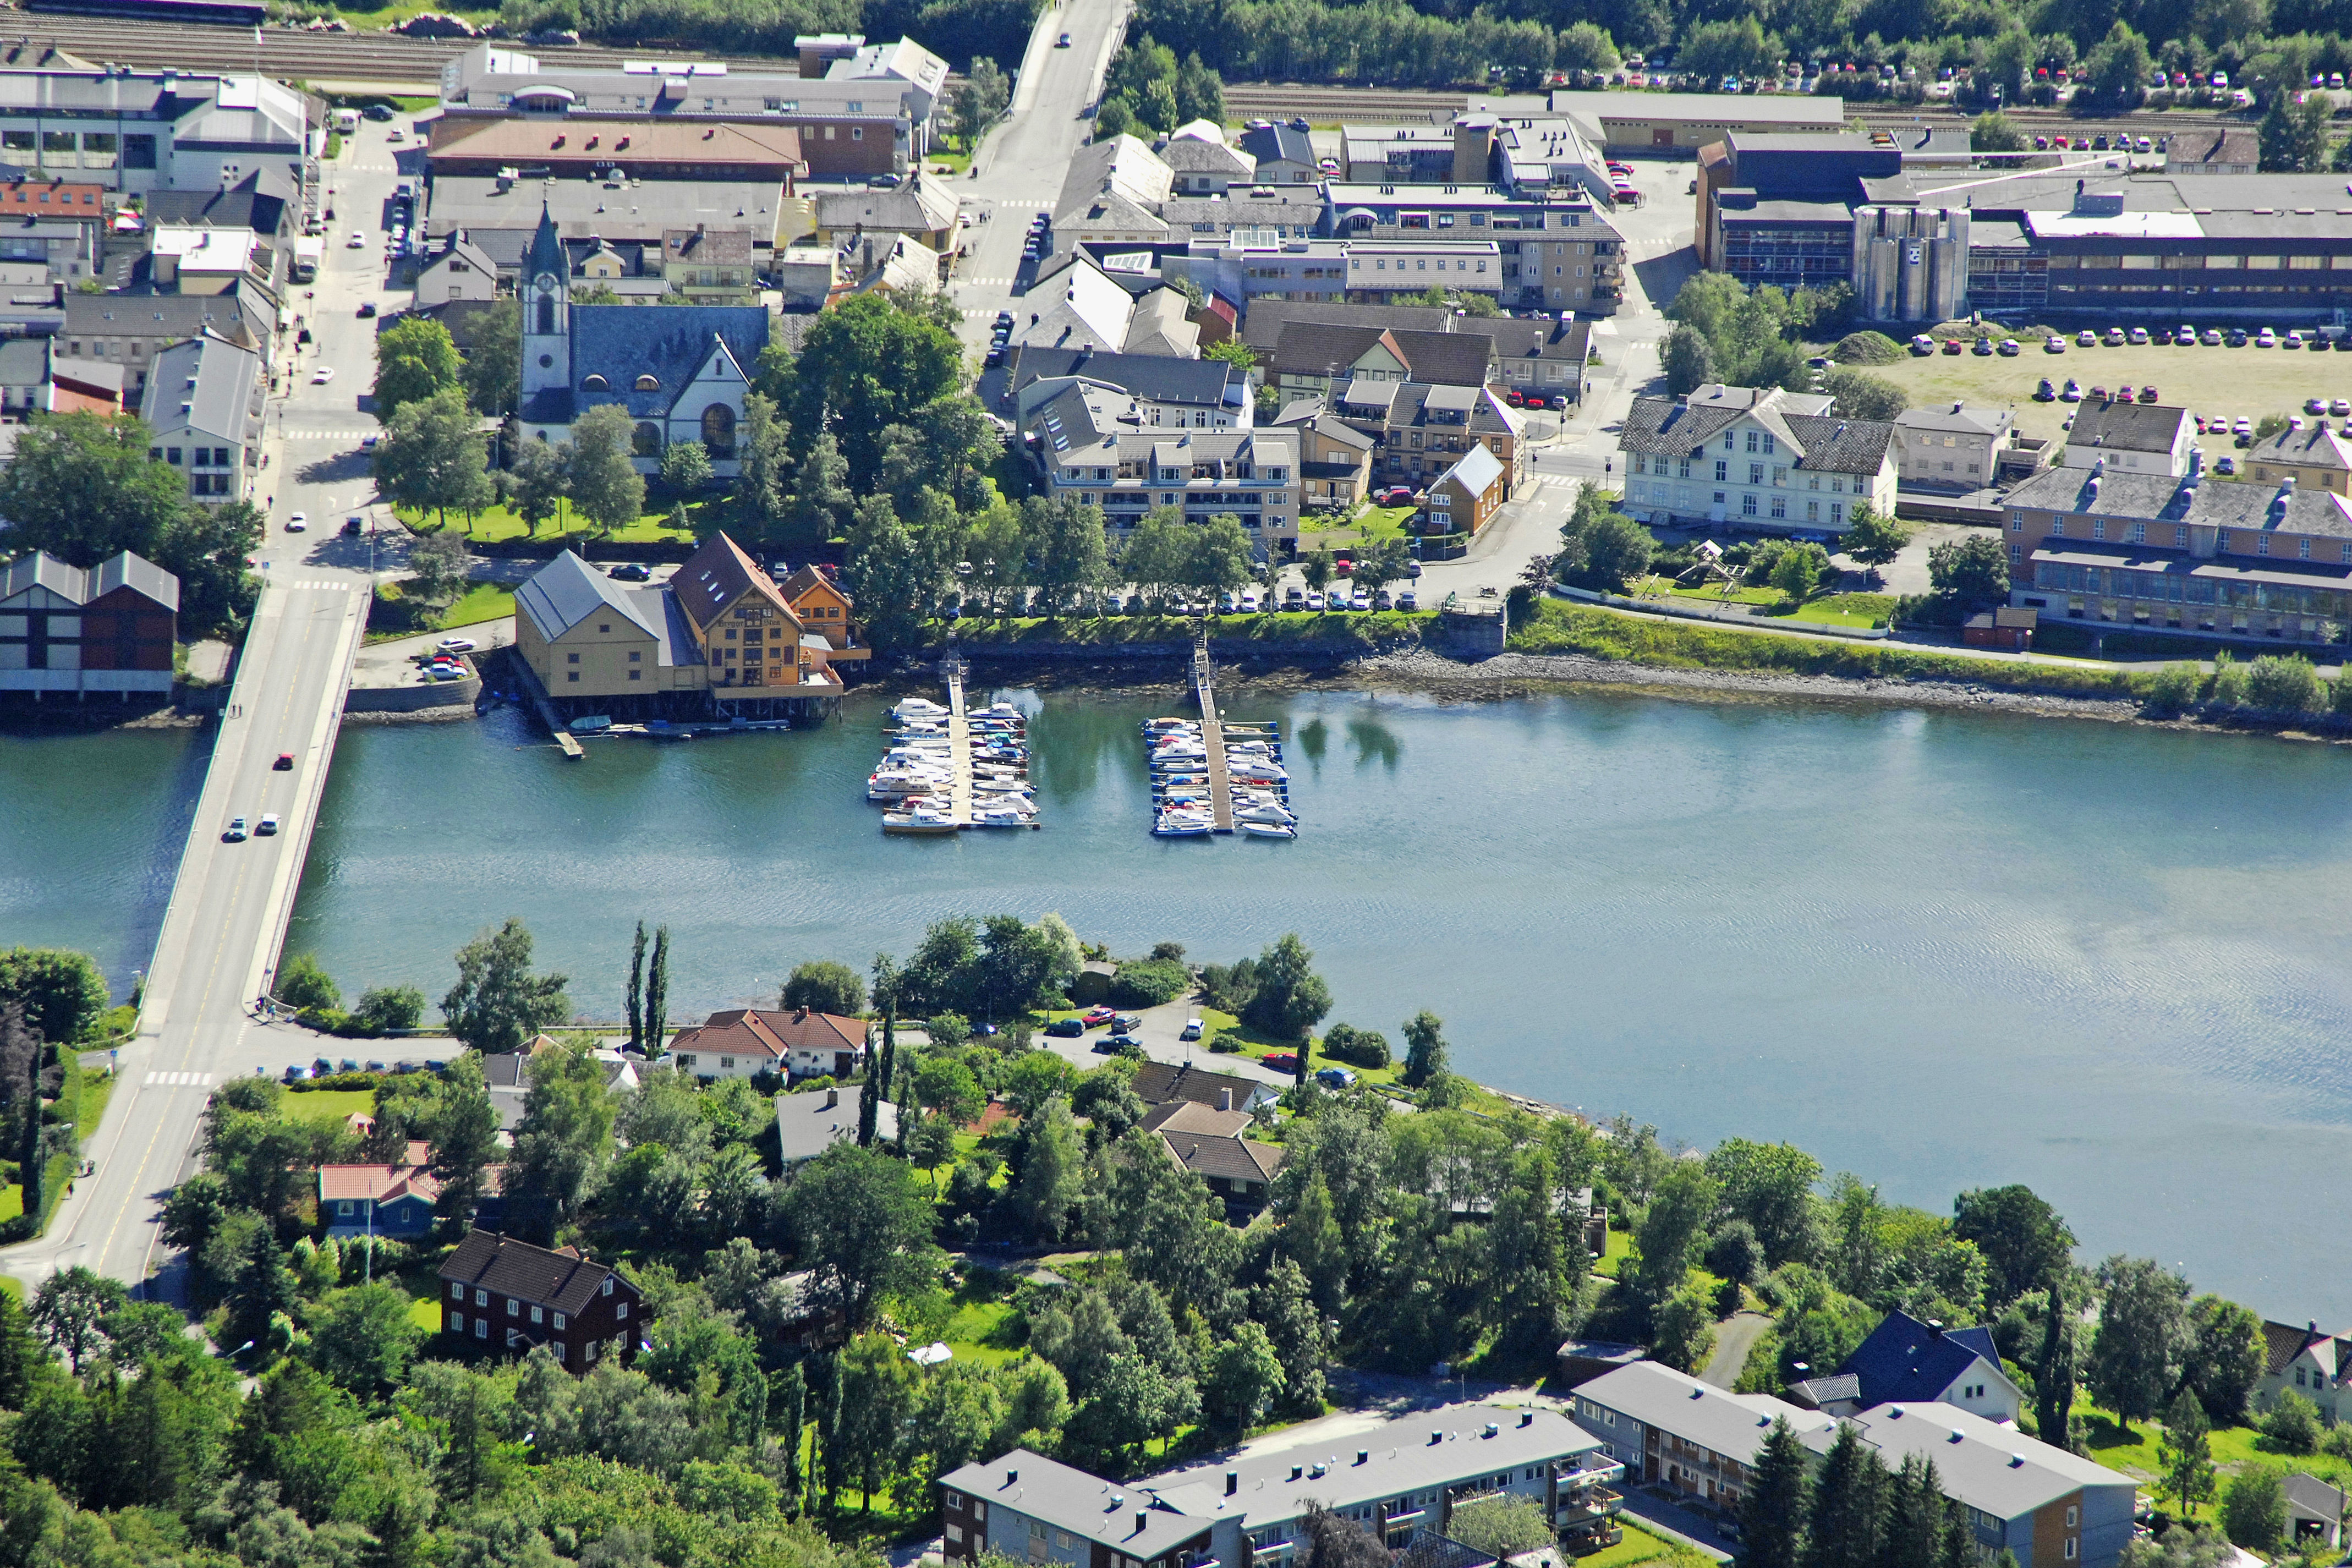 c date norge Levanger